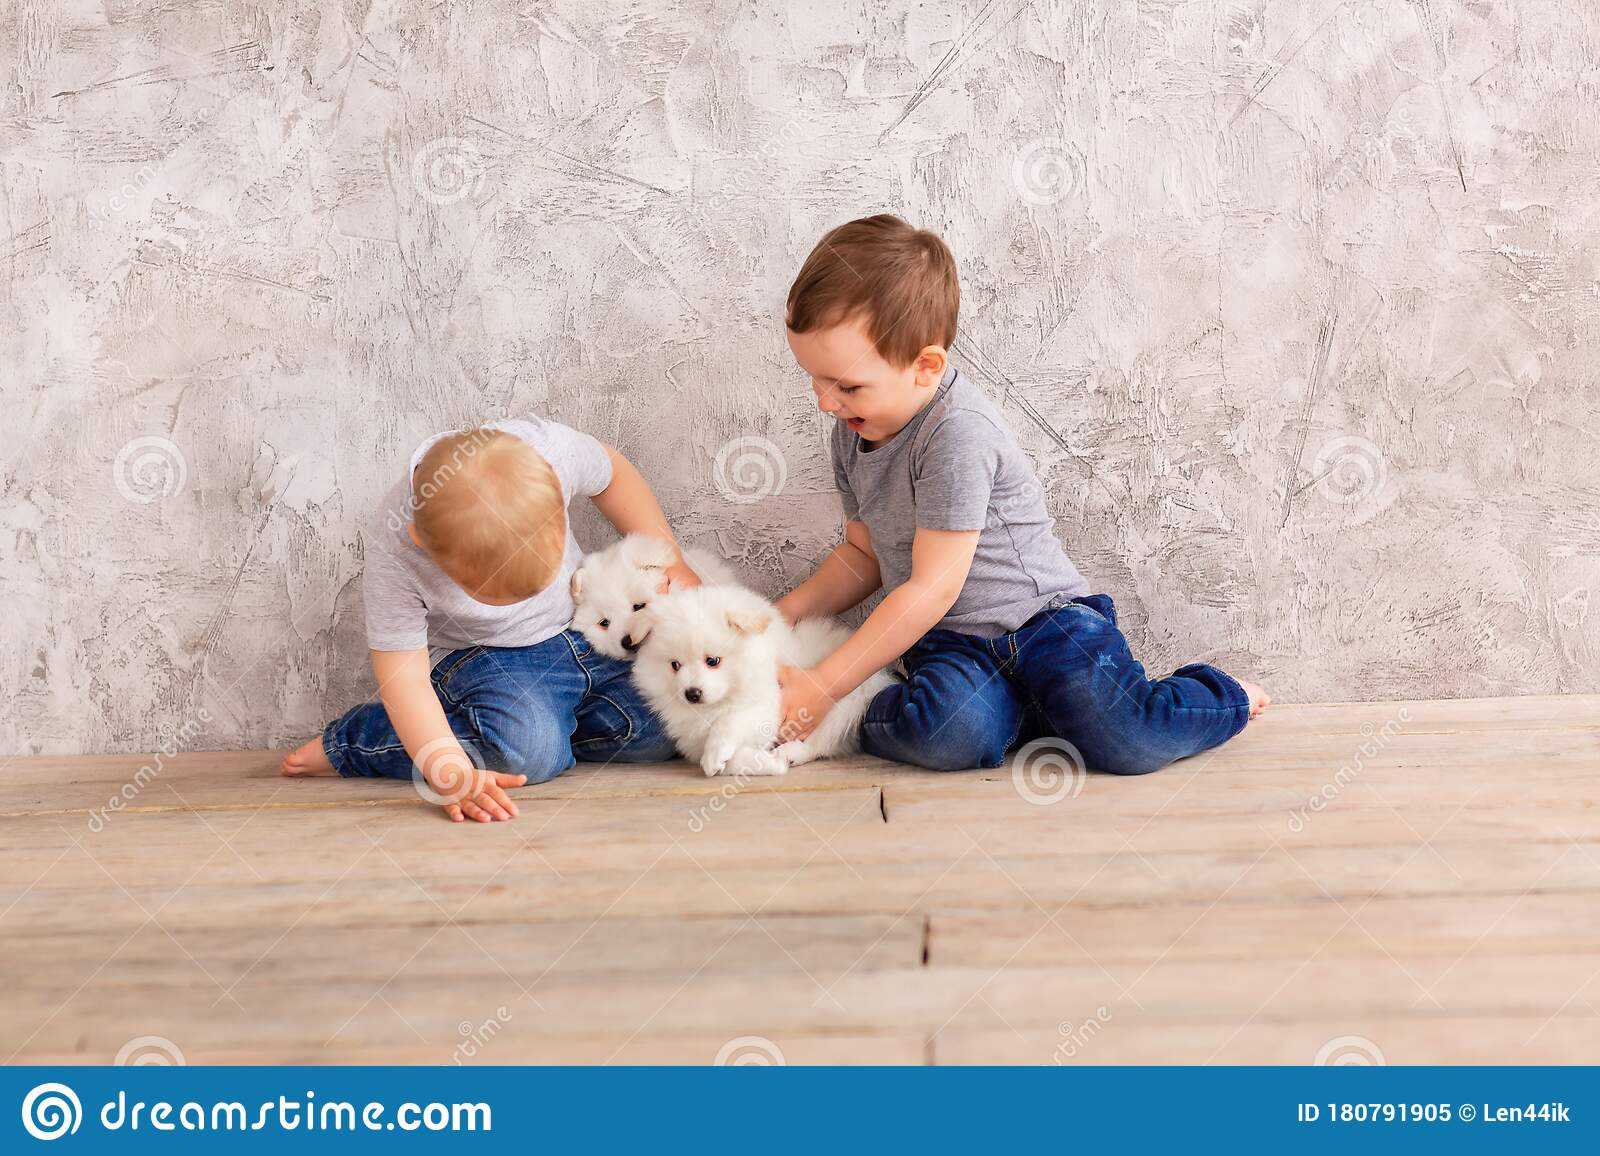 Two Cute Little Baby Boys Playing With Little White Puppies Stock Image Image Of Kiss Home 180791905